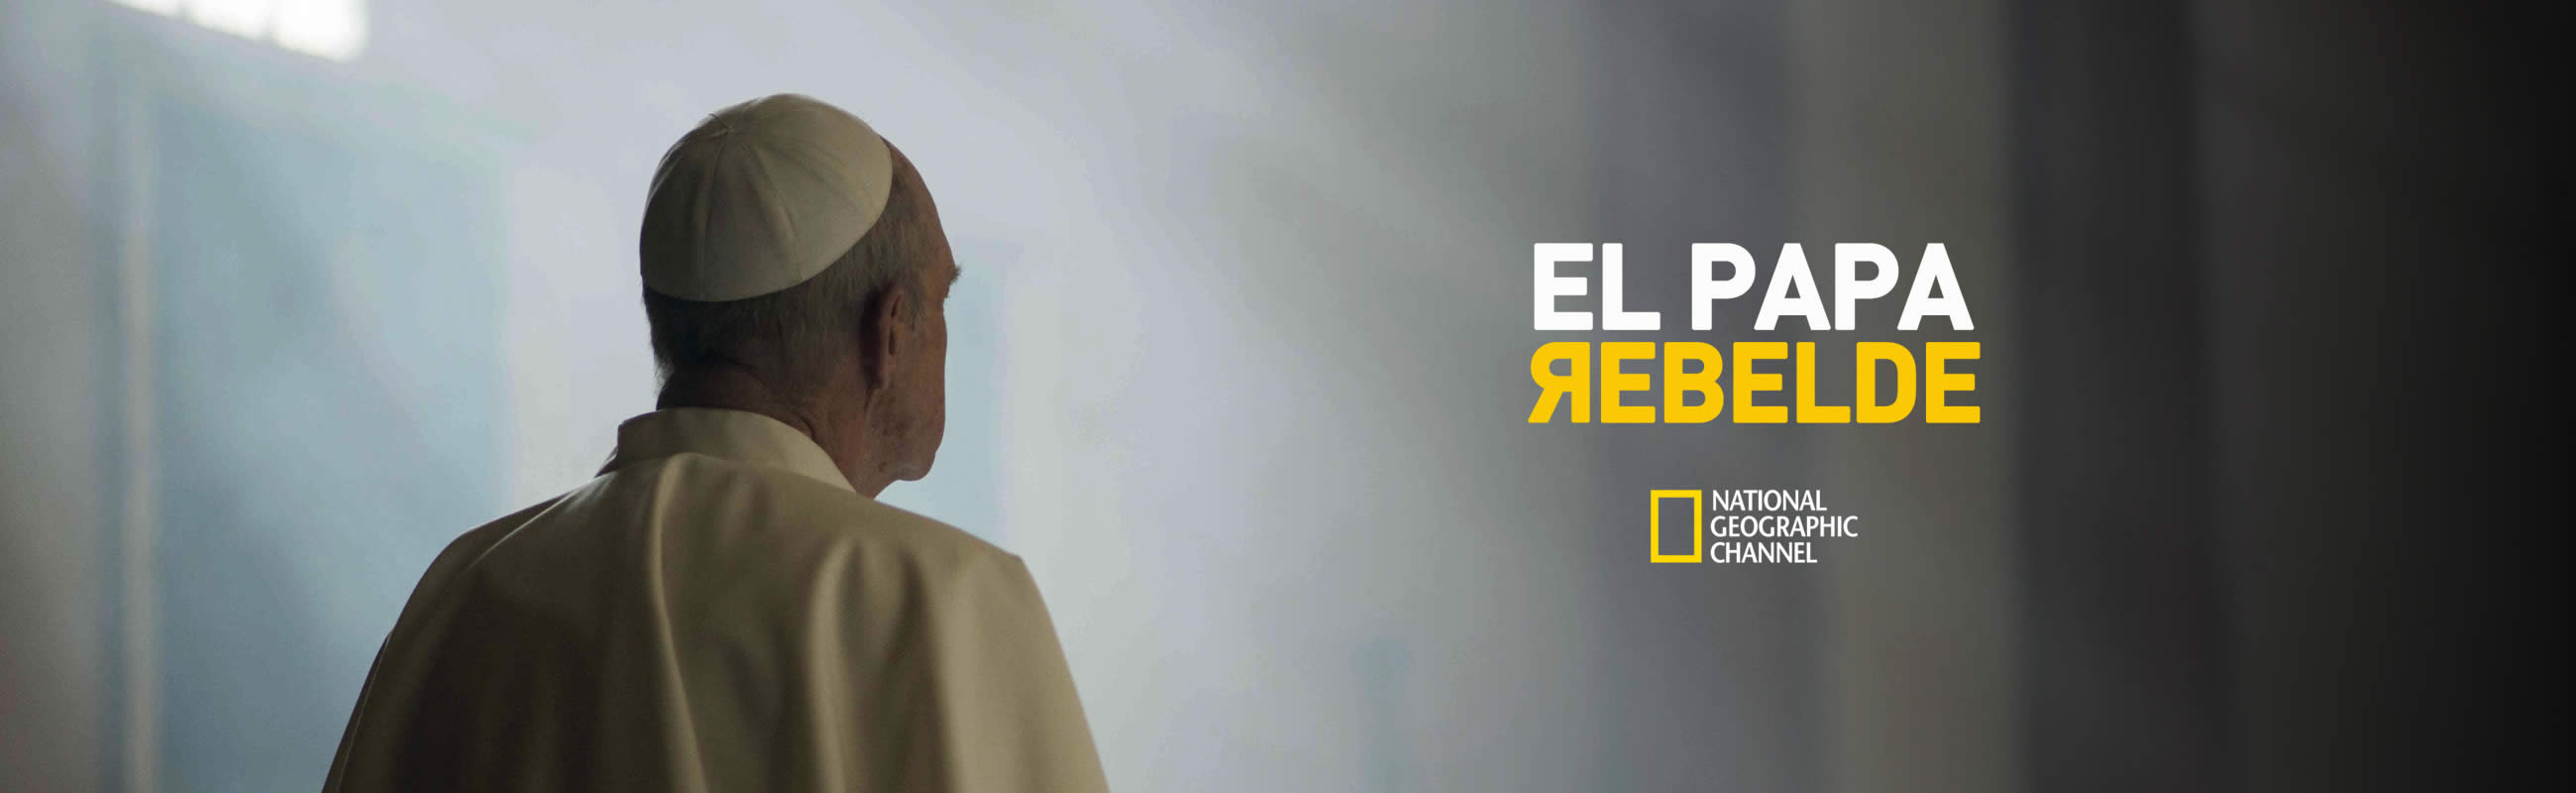 El Papa Rebelde - The Rebel Pope | NatGeo